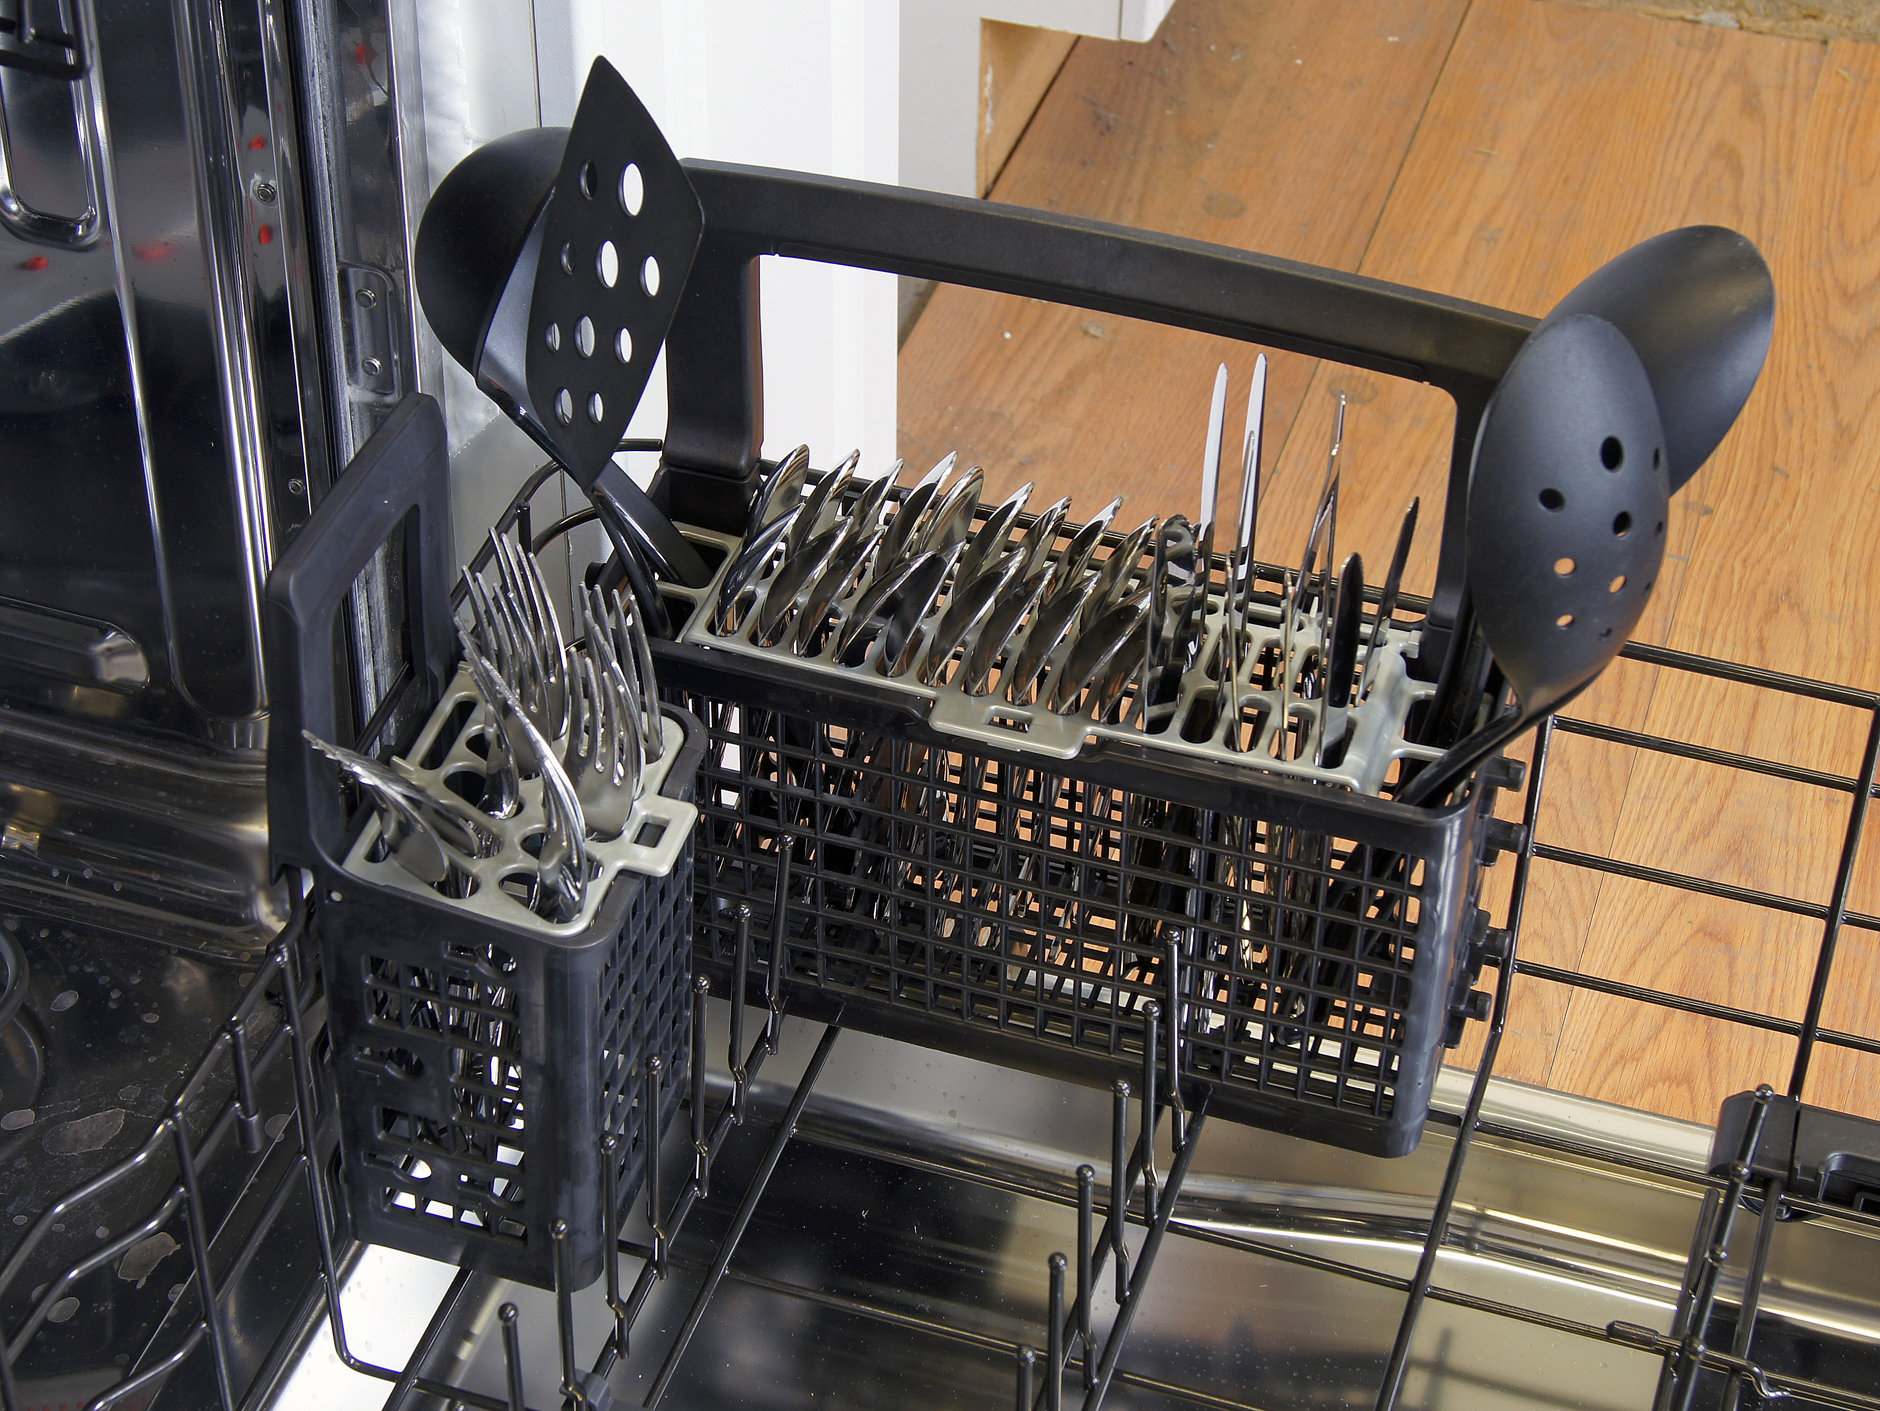 GE Cafe CDT725SSFSS cutlery basket loaded with silverware